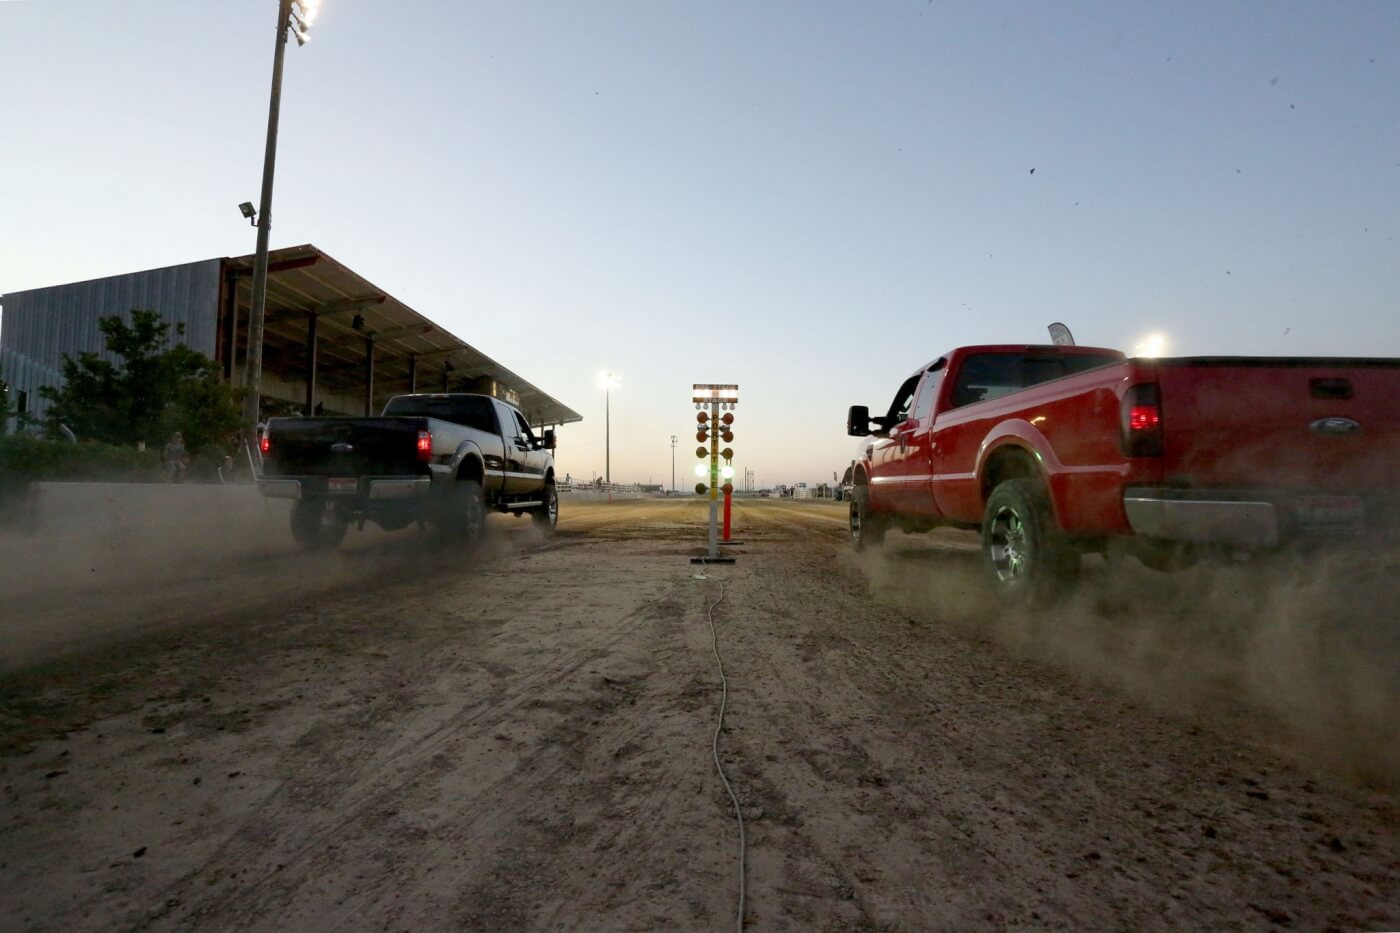 The Dog Days Dirt Drags have become a staple at the event and are always a crowd favorite. If you think 500+ horsepower on asphalt is fun, try it on the dirt when traction is limited—this is where true driving skills really shine.